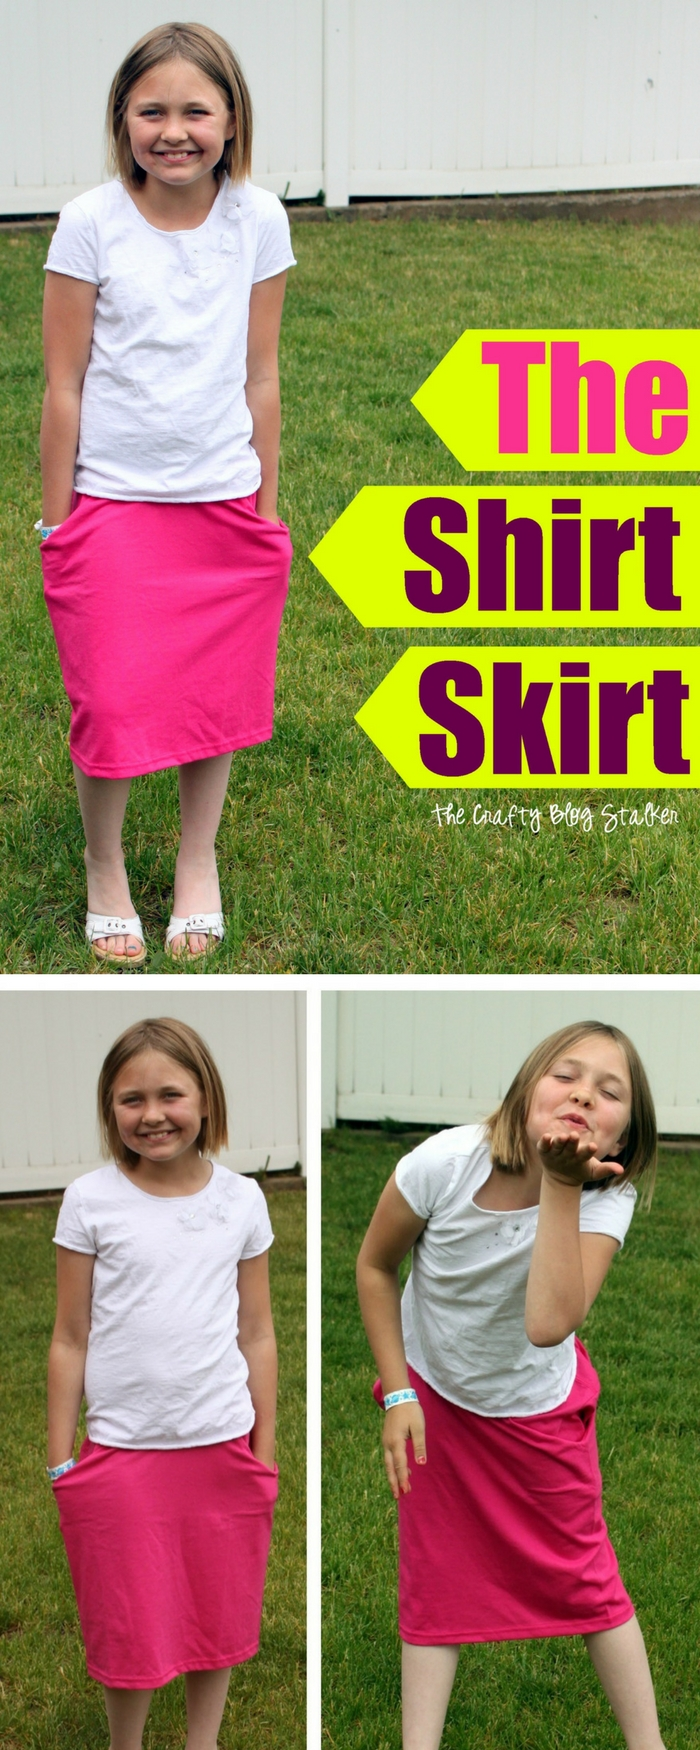 Shirt Skirt | How to Sew | T-shirt Refashion | Easy Sew Tutorial | Handmade | DIY